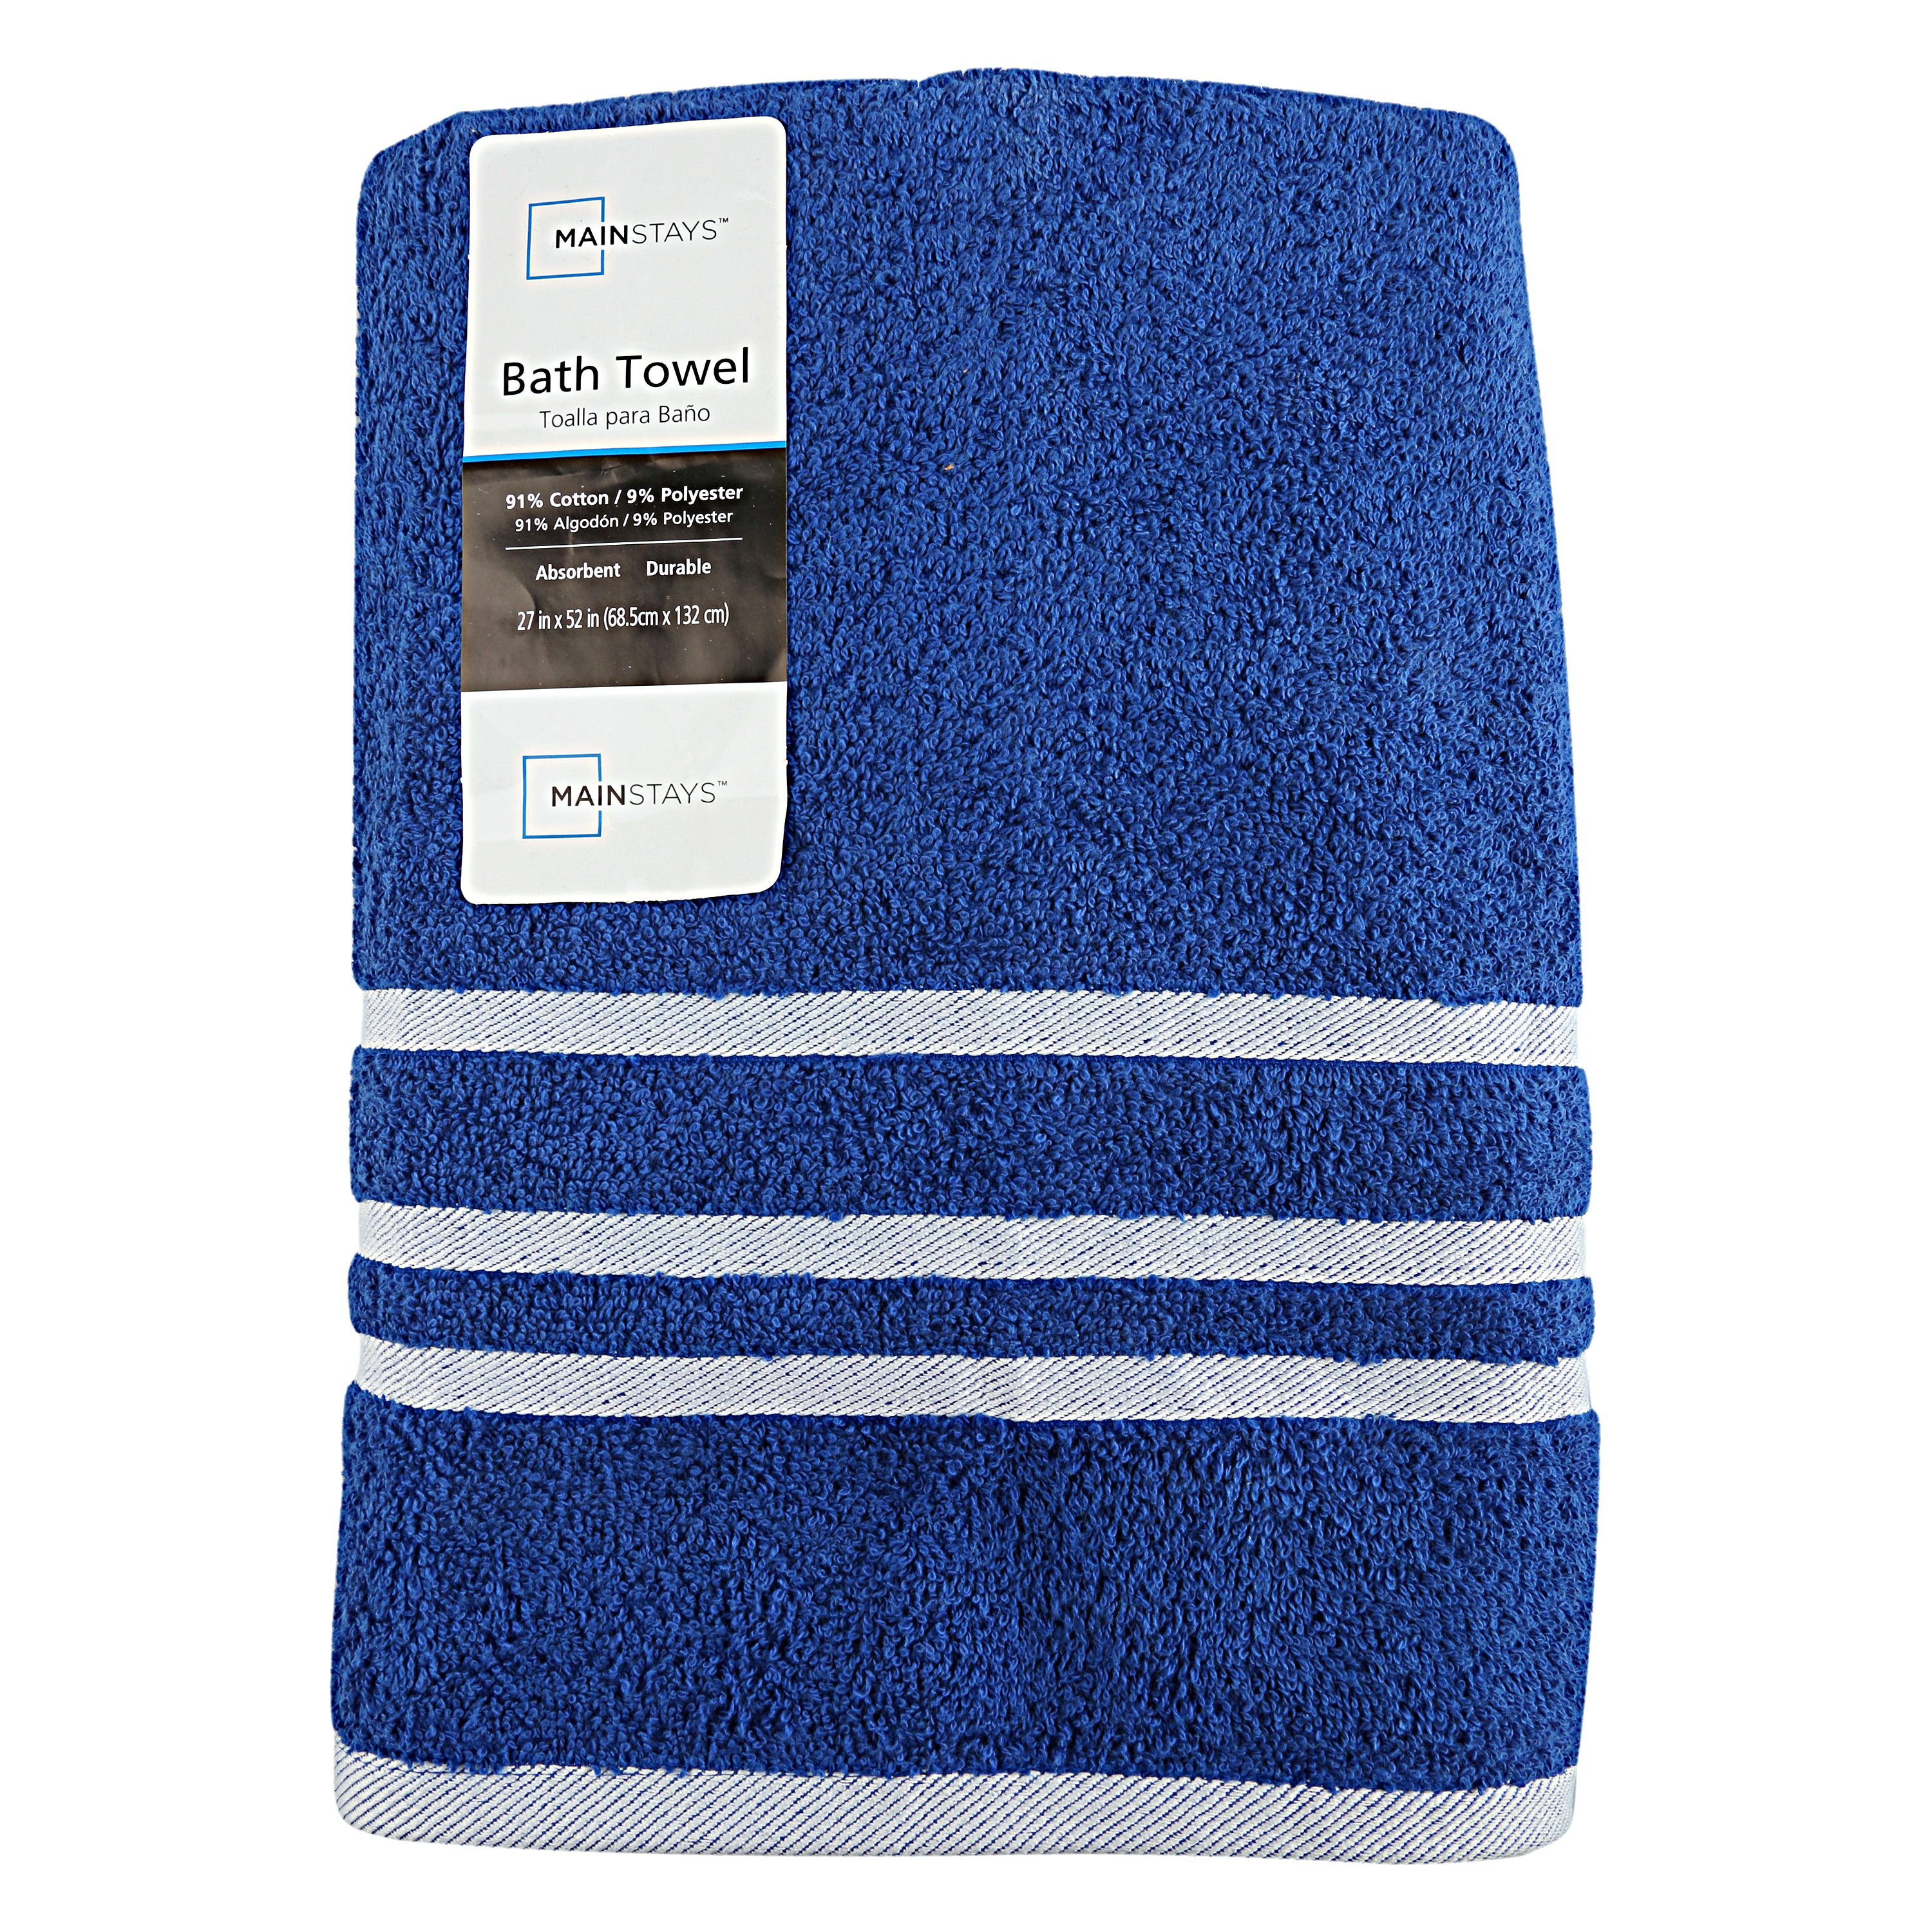 Click here to buy Mainstays Royal Spice Blue and White Basic Bath Towel, 27 x 52 Inches.